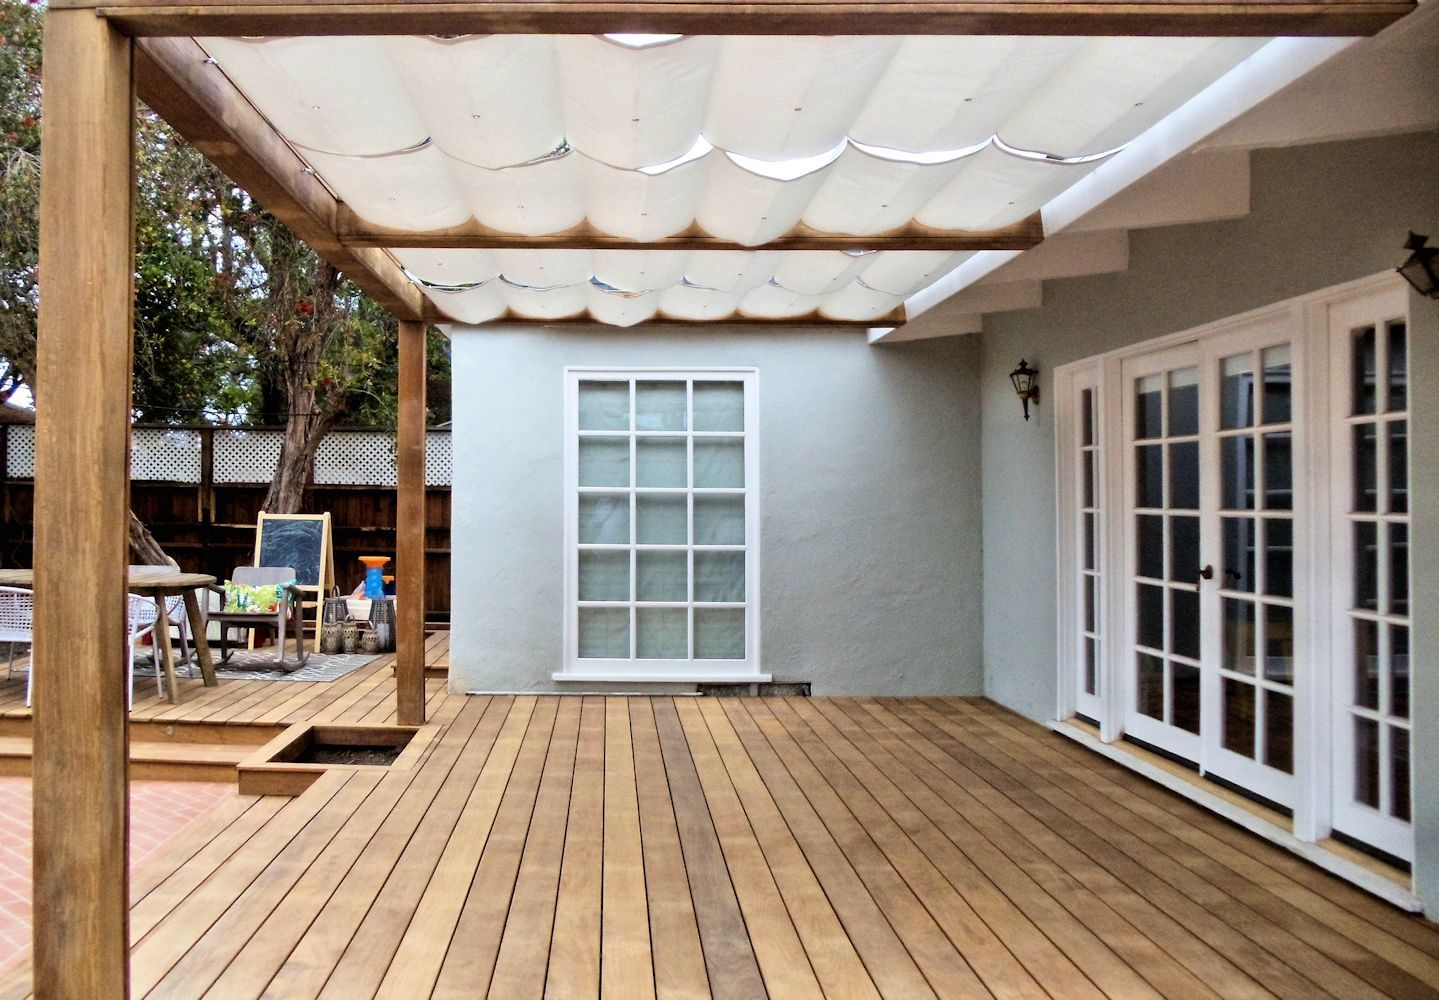 Slide Wire Cable Awnings Superior Awning Backyard